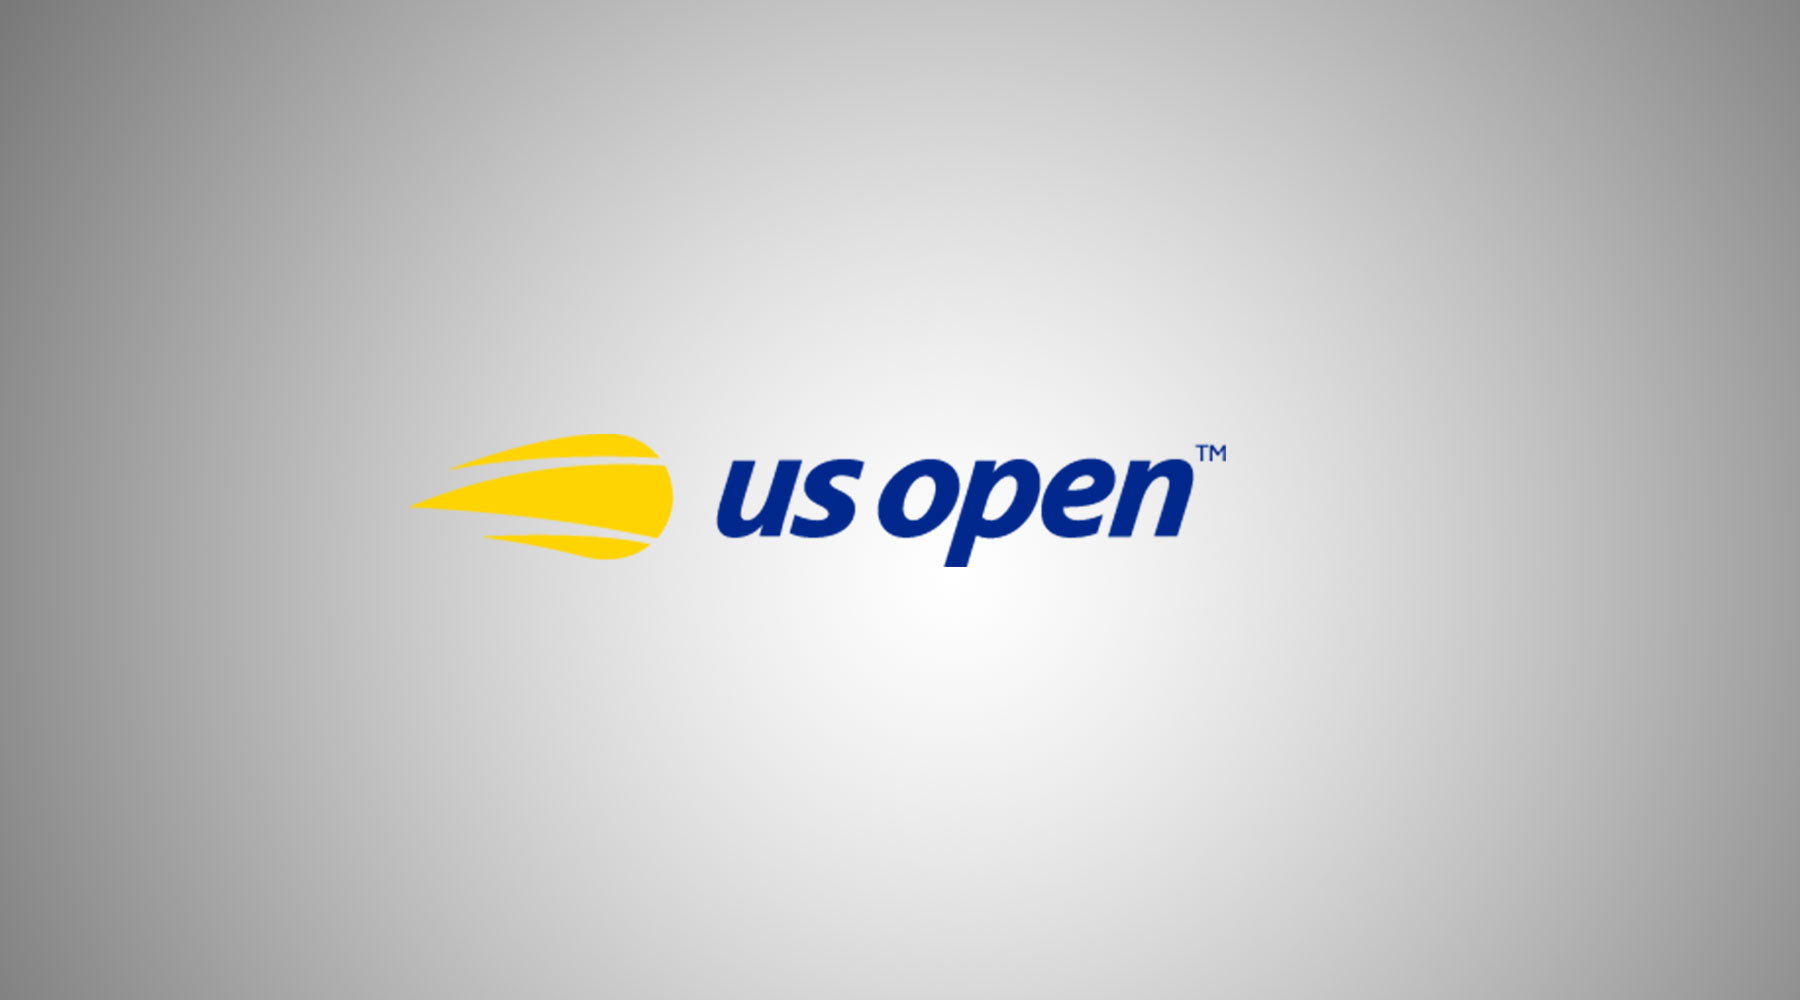 6 Things to Know about the 2020 US Open